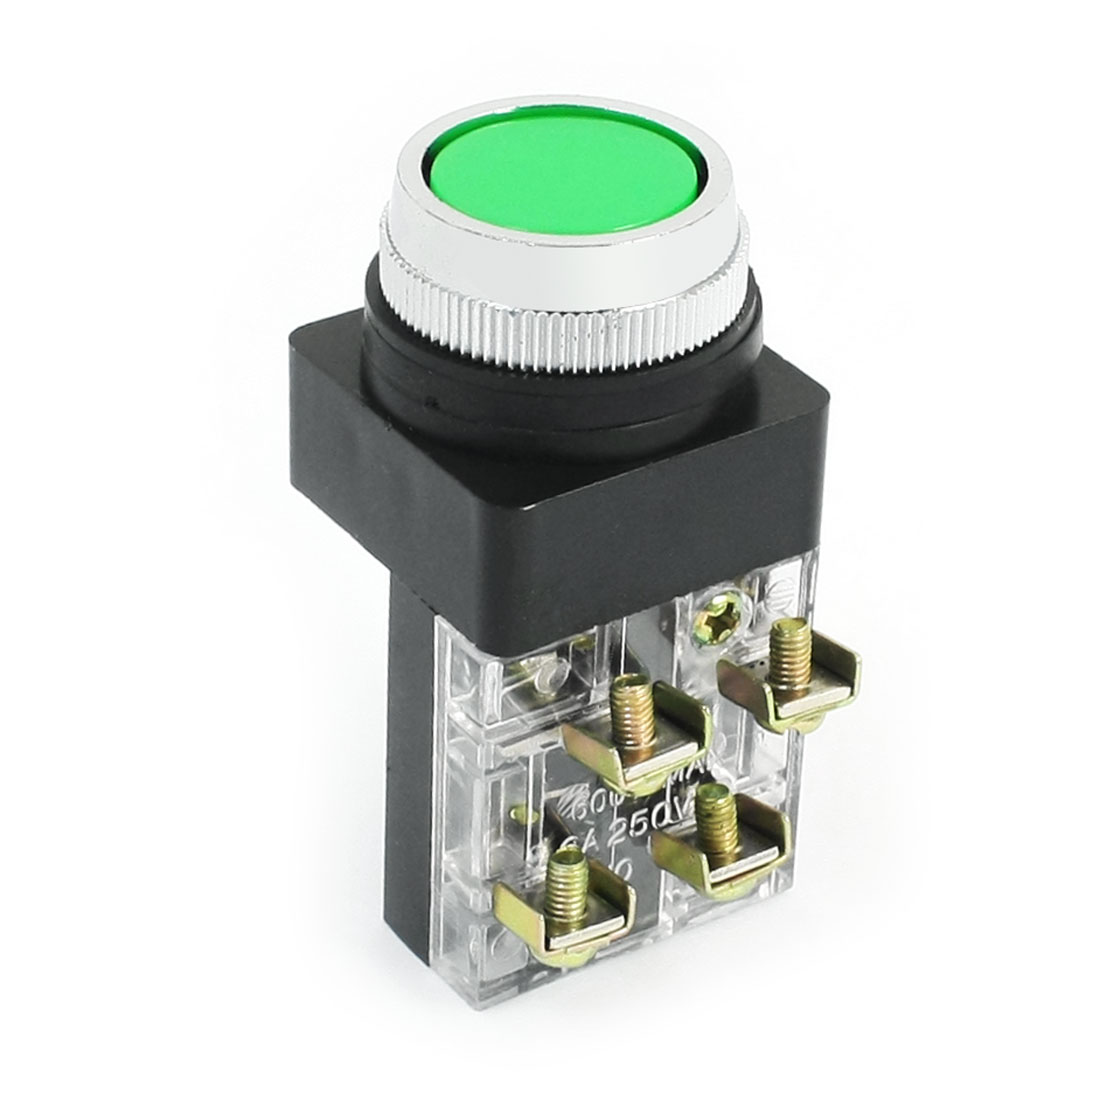 22mm Panel Mounted AC 250V 6A DPST NO NC Momentary Push Button Switch Green